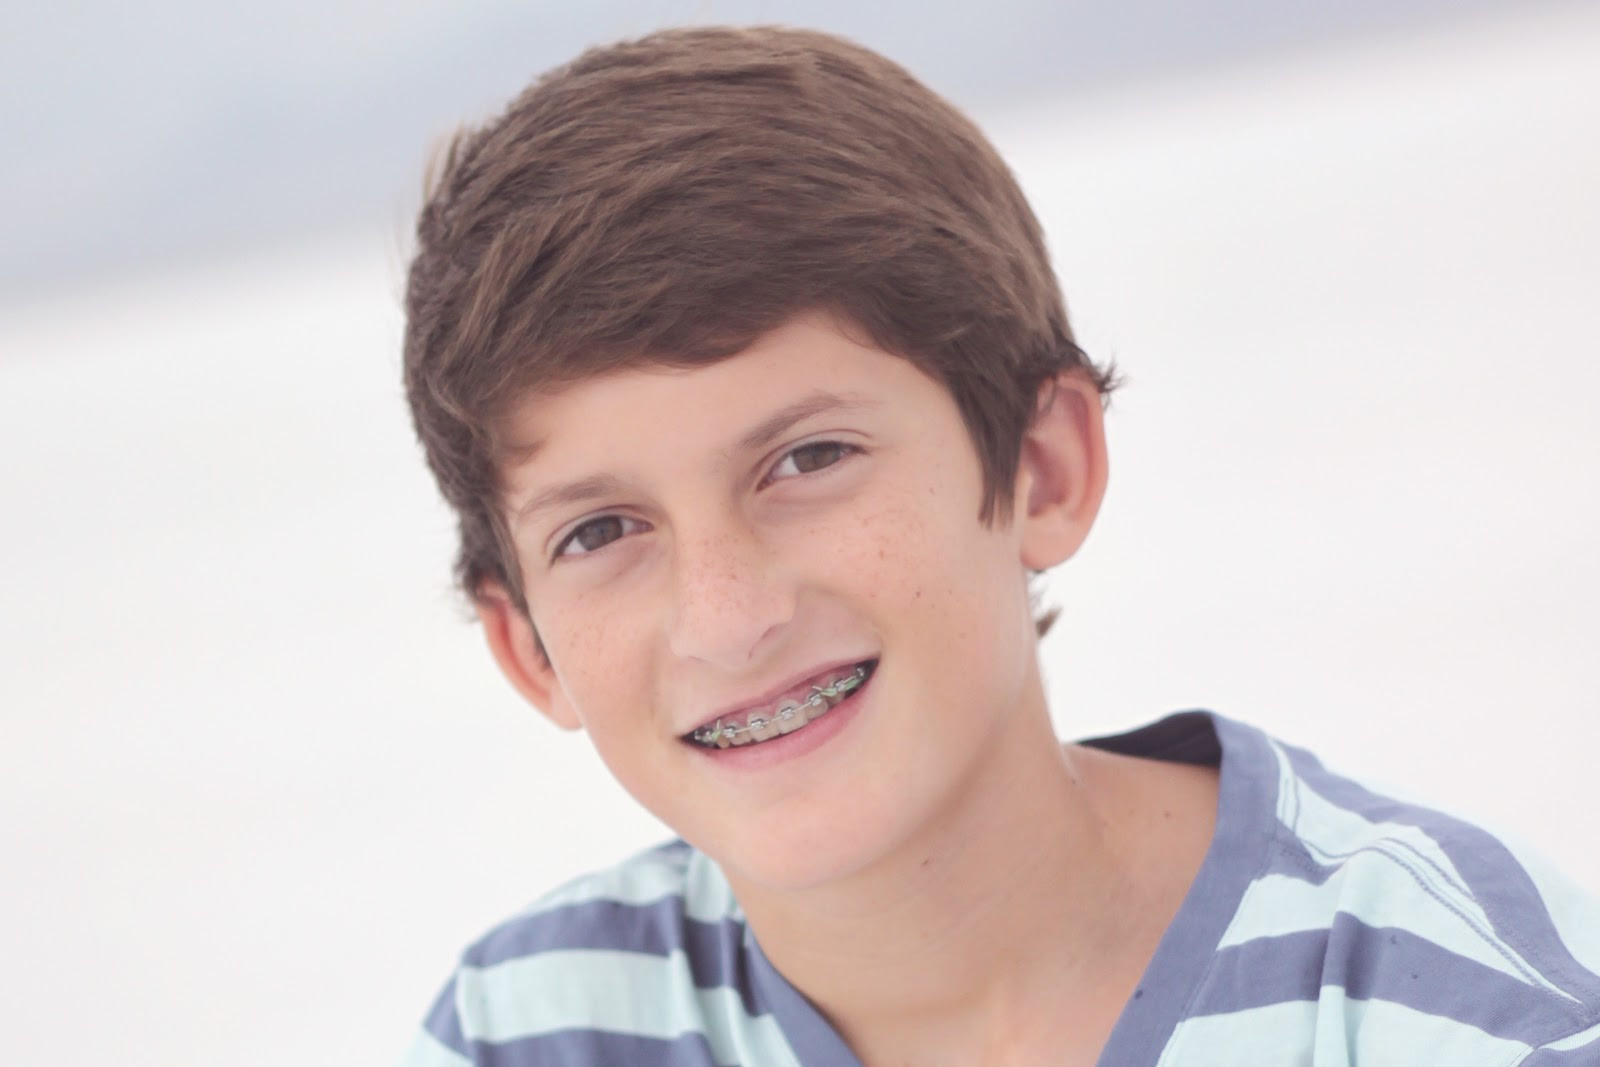 Best ideas about 14 Year Old Boys Haircuts . Save or Pin The Seal Bark November 2012 Now.